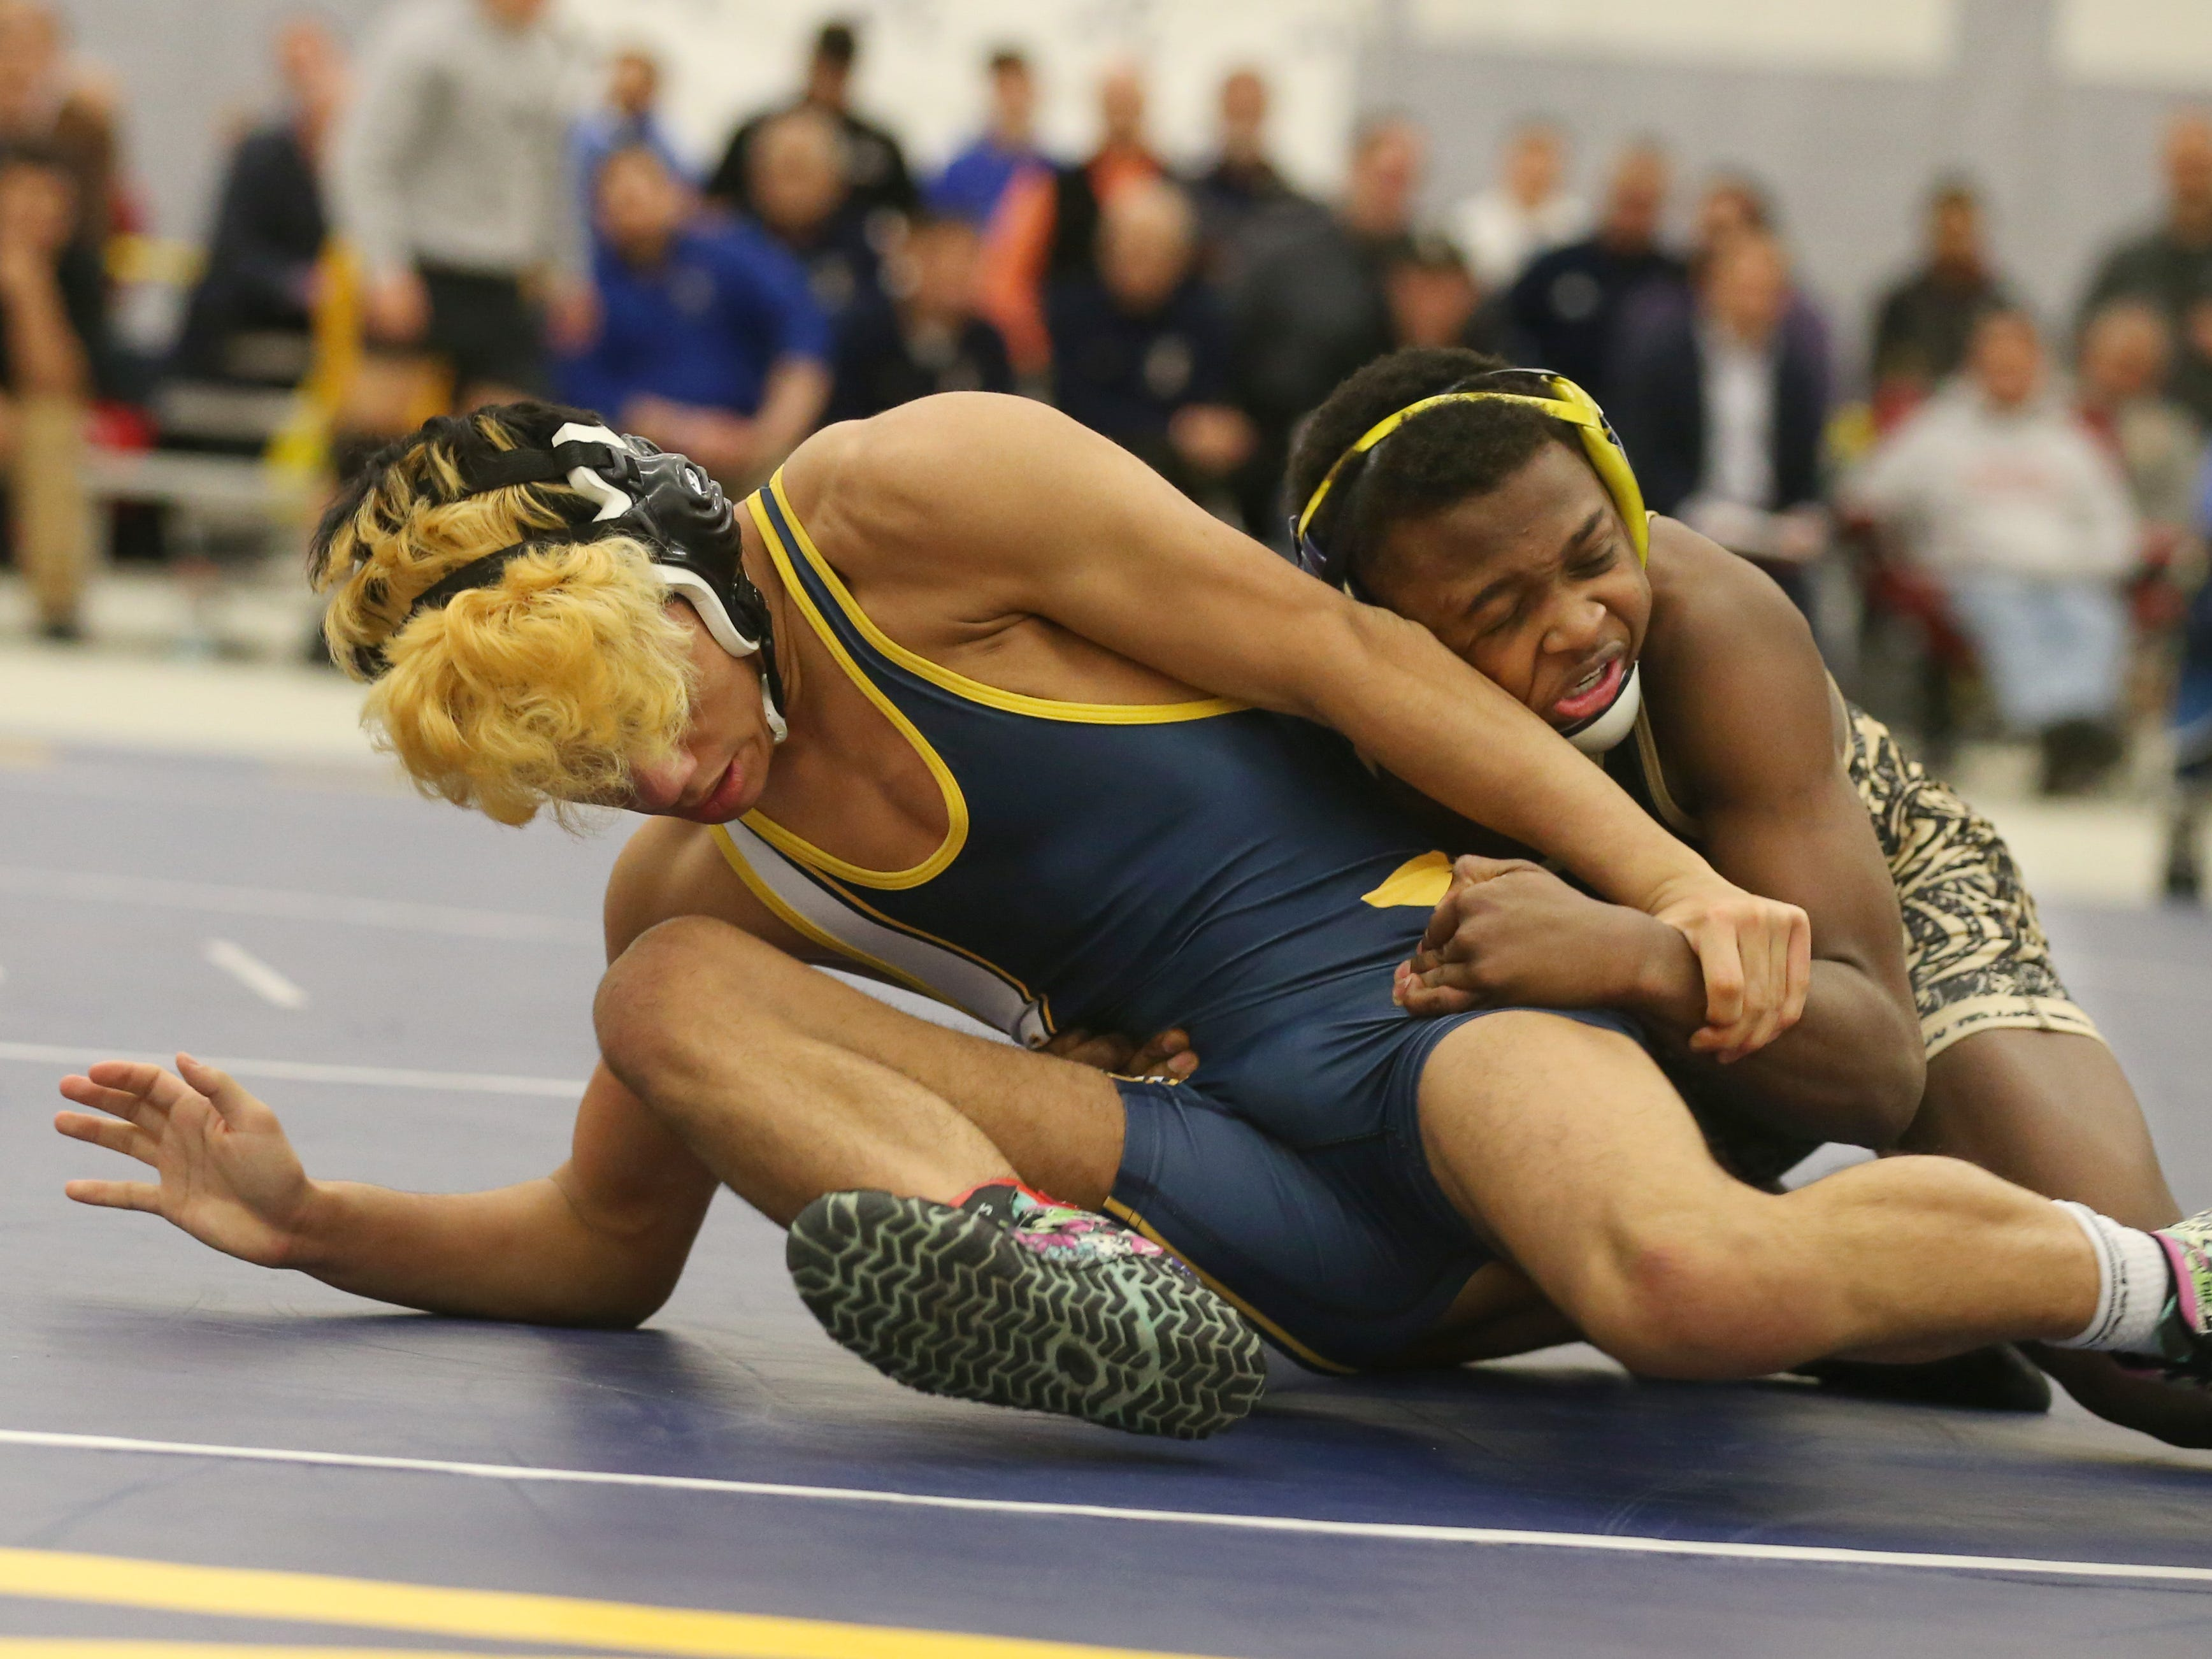 Rush Henrietta's Jayden Scott, right, ties up Cj Lee, Webster Thomas, in their Division 1, 120 pound match at the 52nd Annual State Wrestling Qualifier at the College at Brockport Saturday, Feb. 9, 2019.